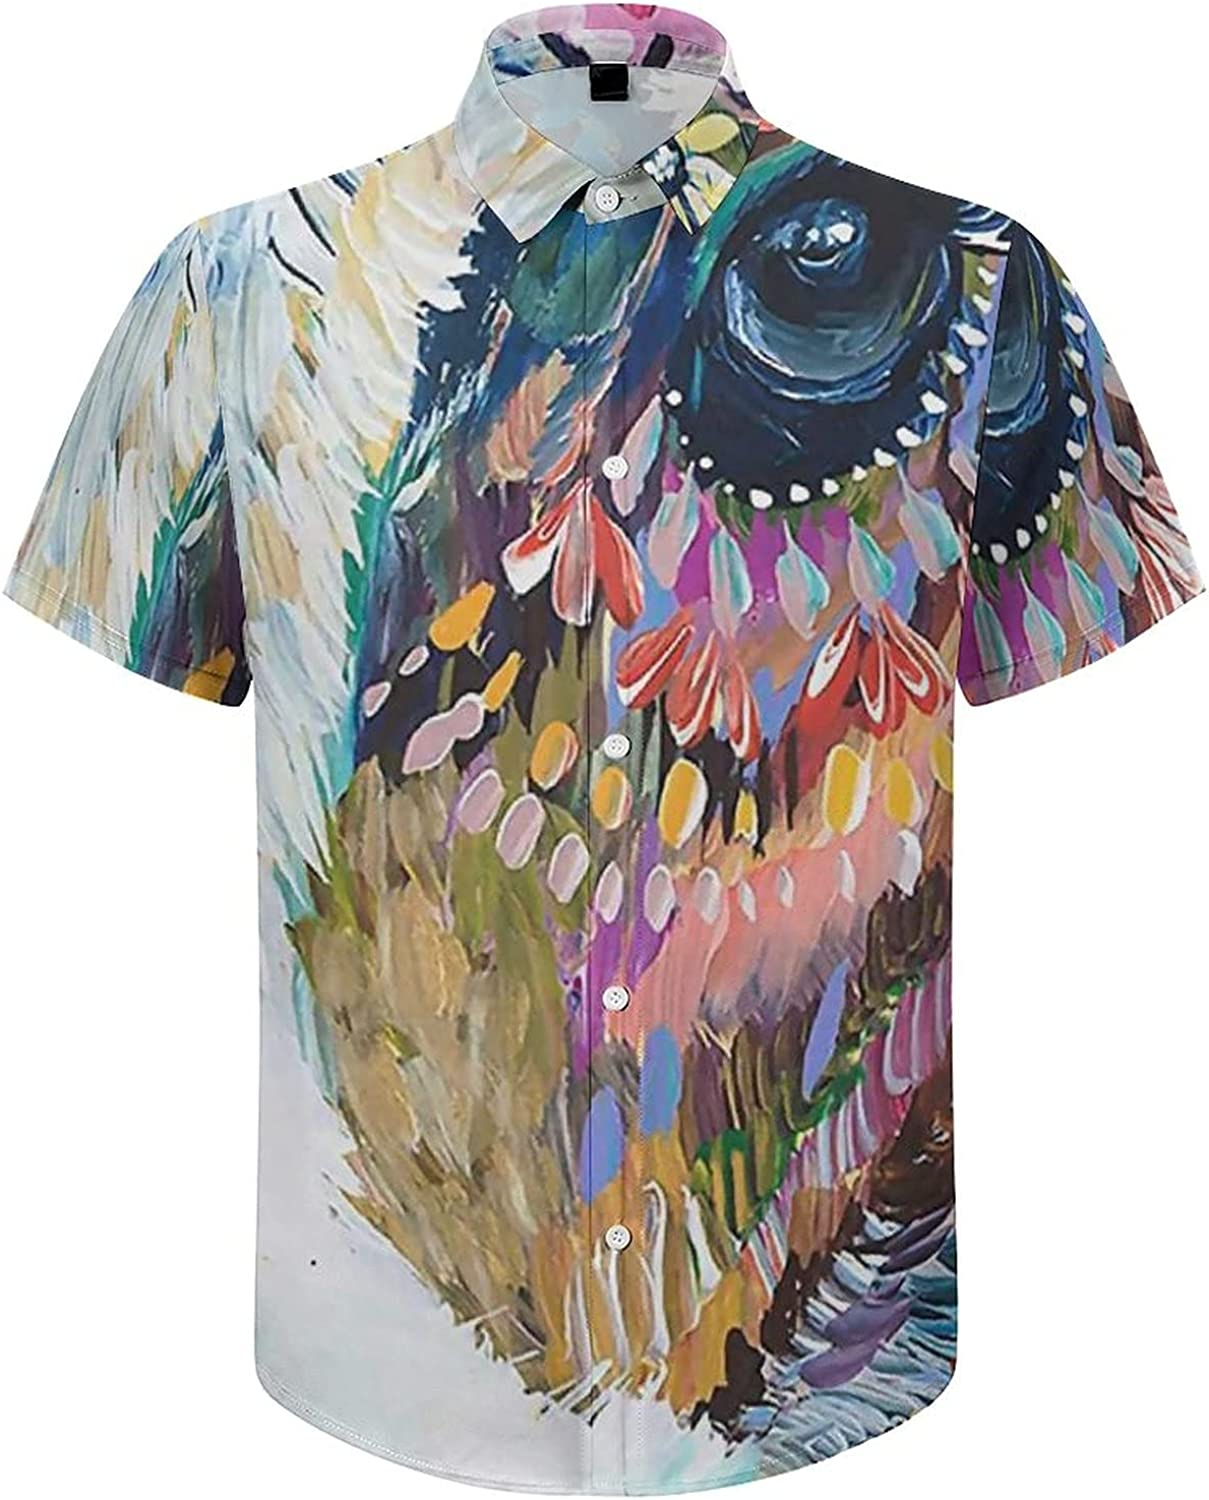 Men's Short Sleeve Button Down Shirt Watercolor Cow with Flowers Summer Shirts